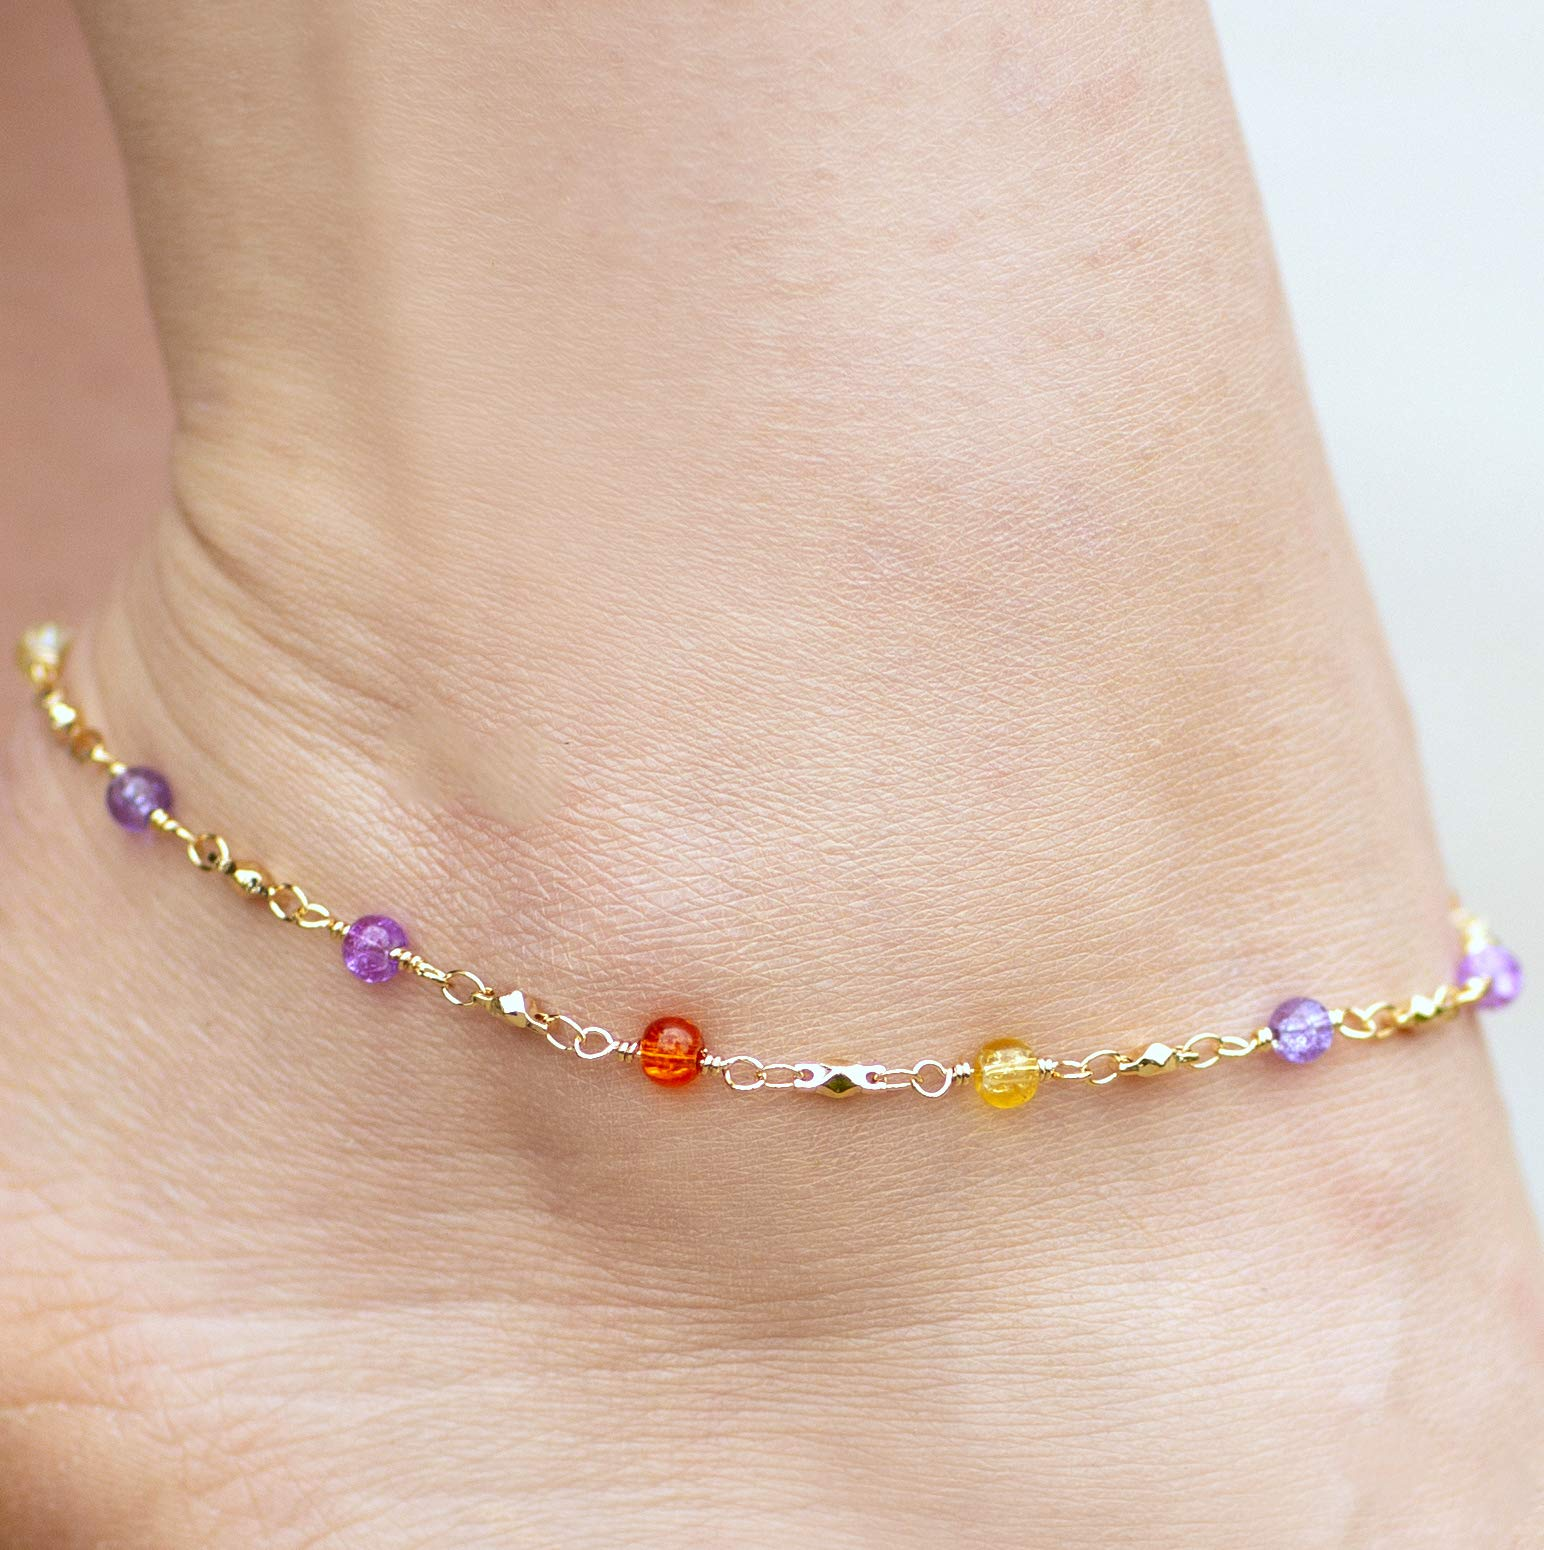 Lifetime Jewelry Ankle Bracelets for Women & Teen Girls [ Durable & Cute Colorful Balls Gold Anklet ] up to 20x More 24k Plating Than Other Foot Jewelry - Lifetime Replacement Guarantee (11.0) by Lifetime Jewelry (Image #5)